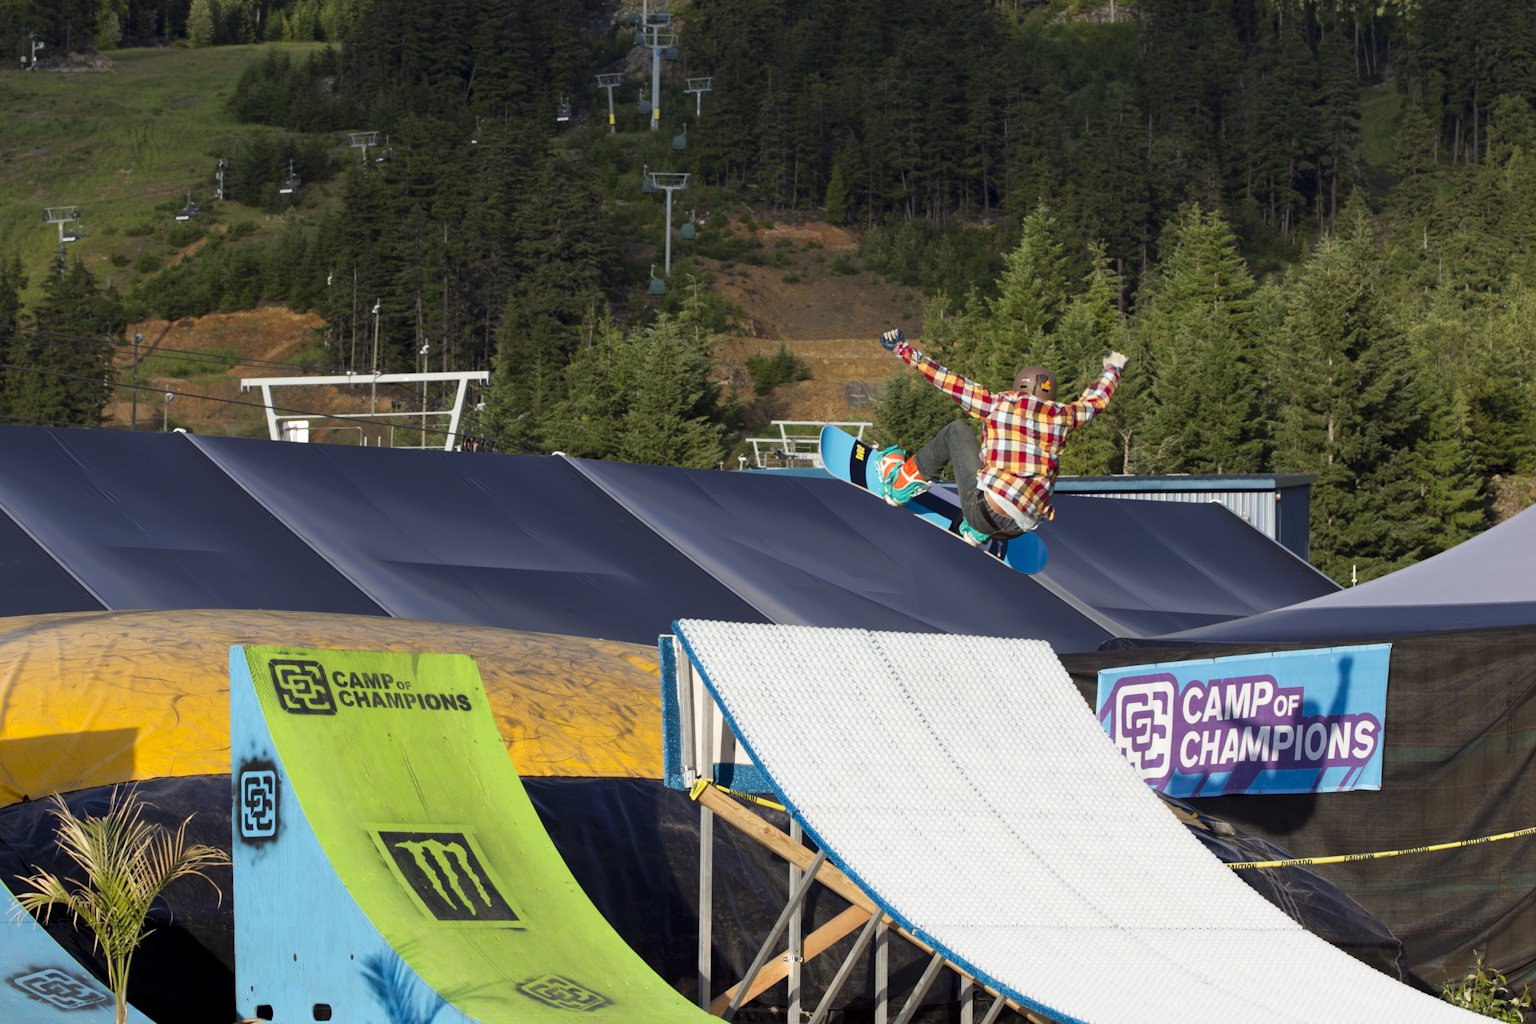 The Camp of Champions - The Launcher - 7 of 15